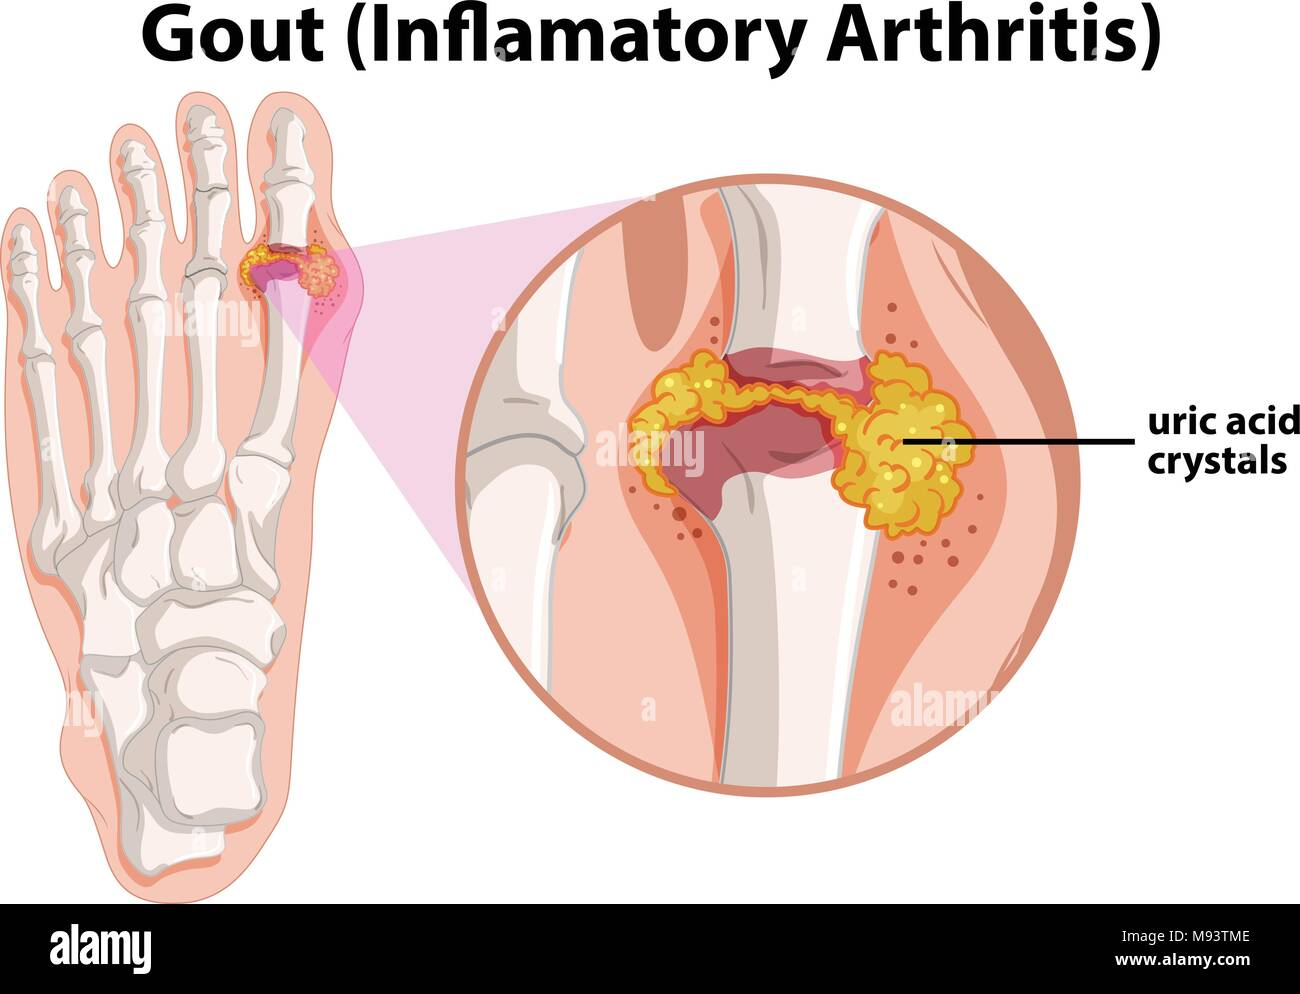 hight resolution of diagram showing gout in human foot illustration stock image